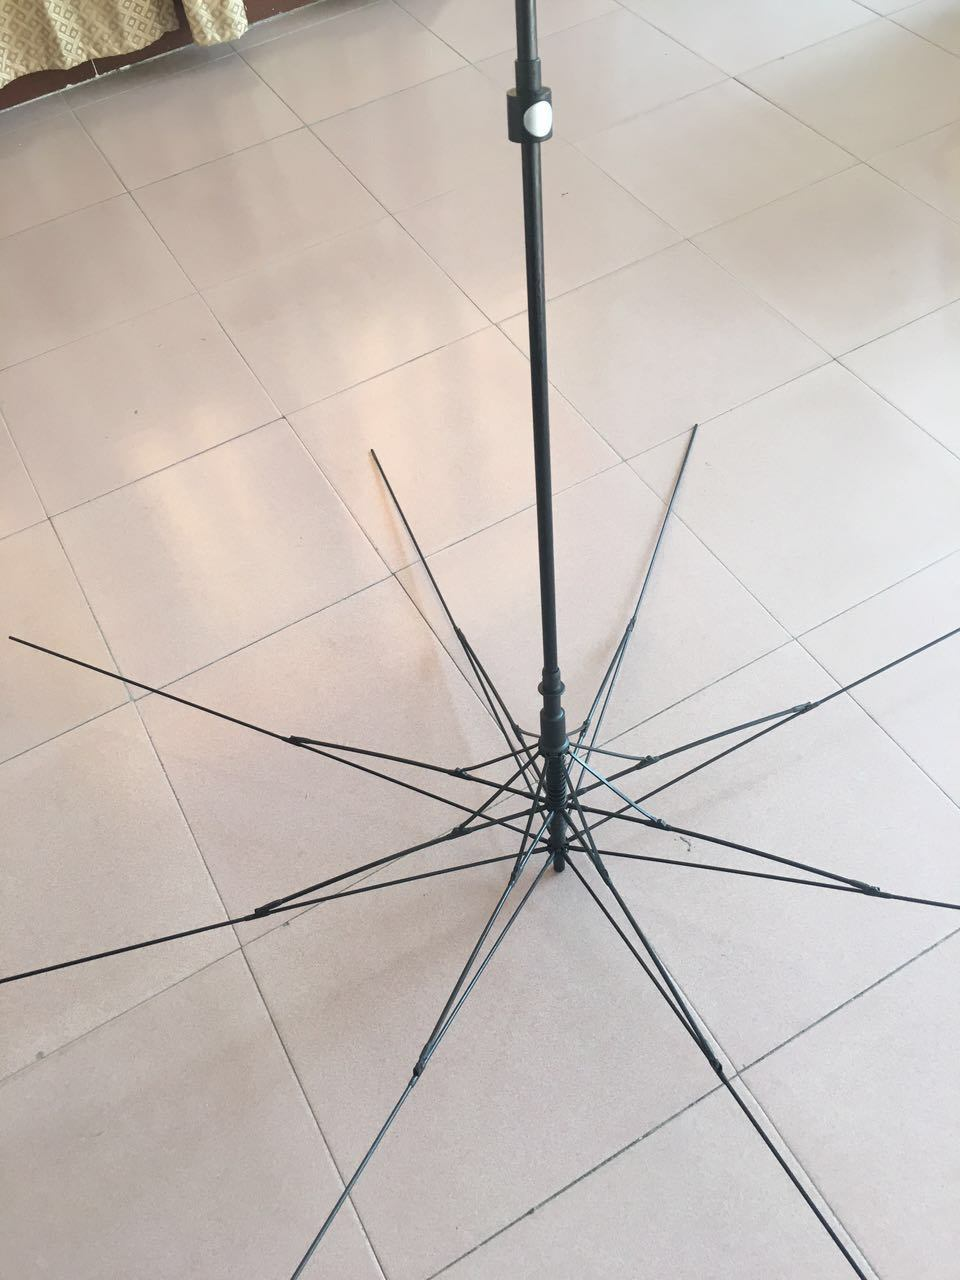 The Middle Type Fiber Frame Umbrella